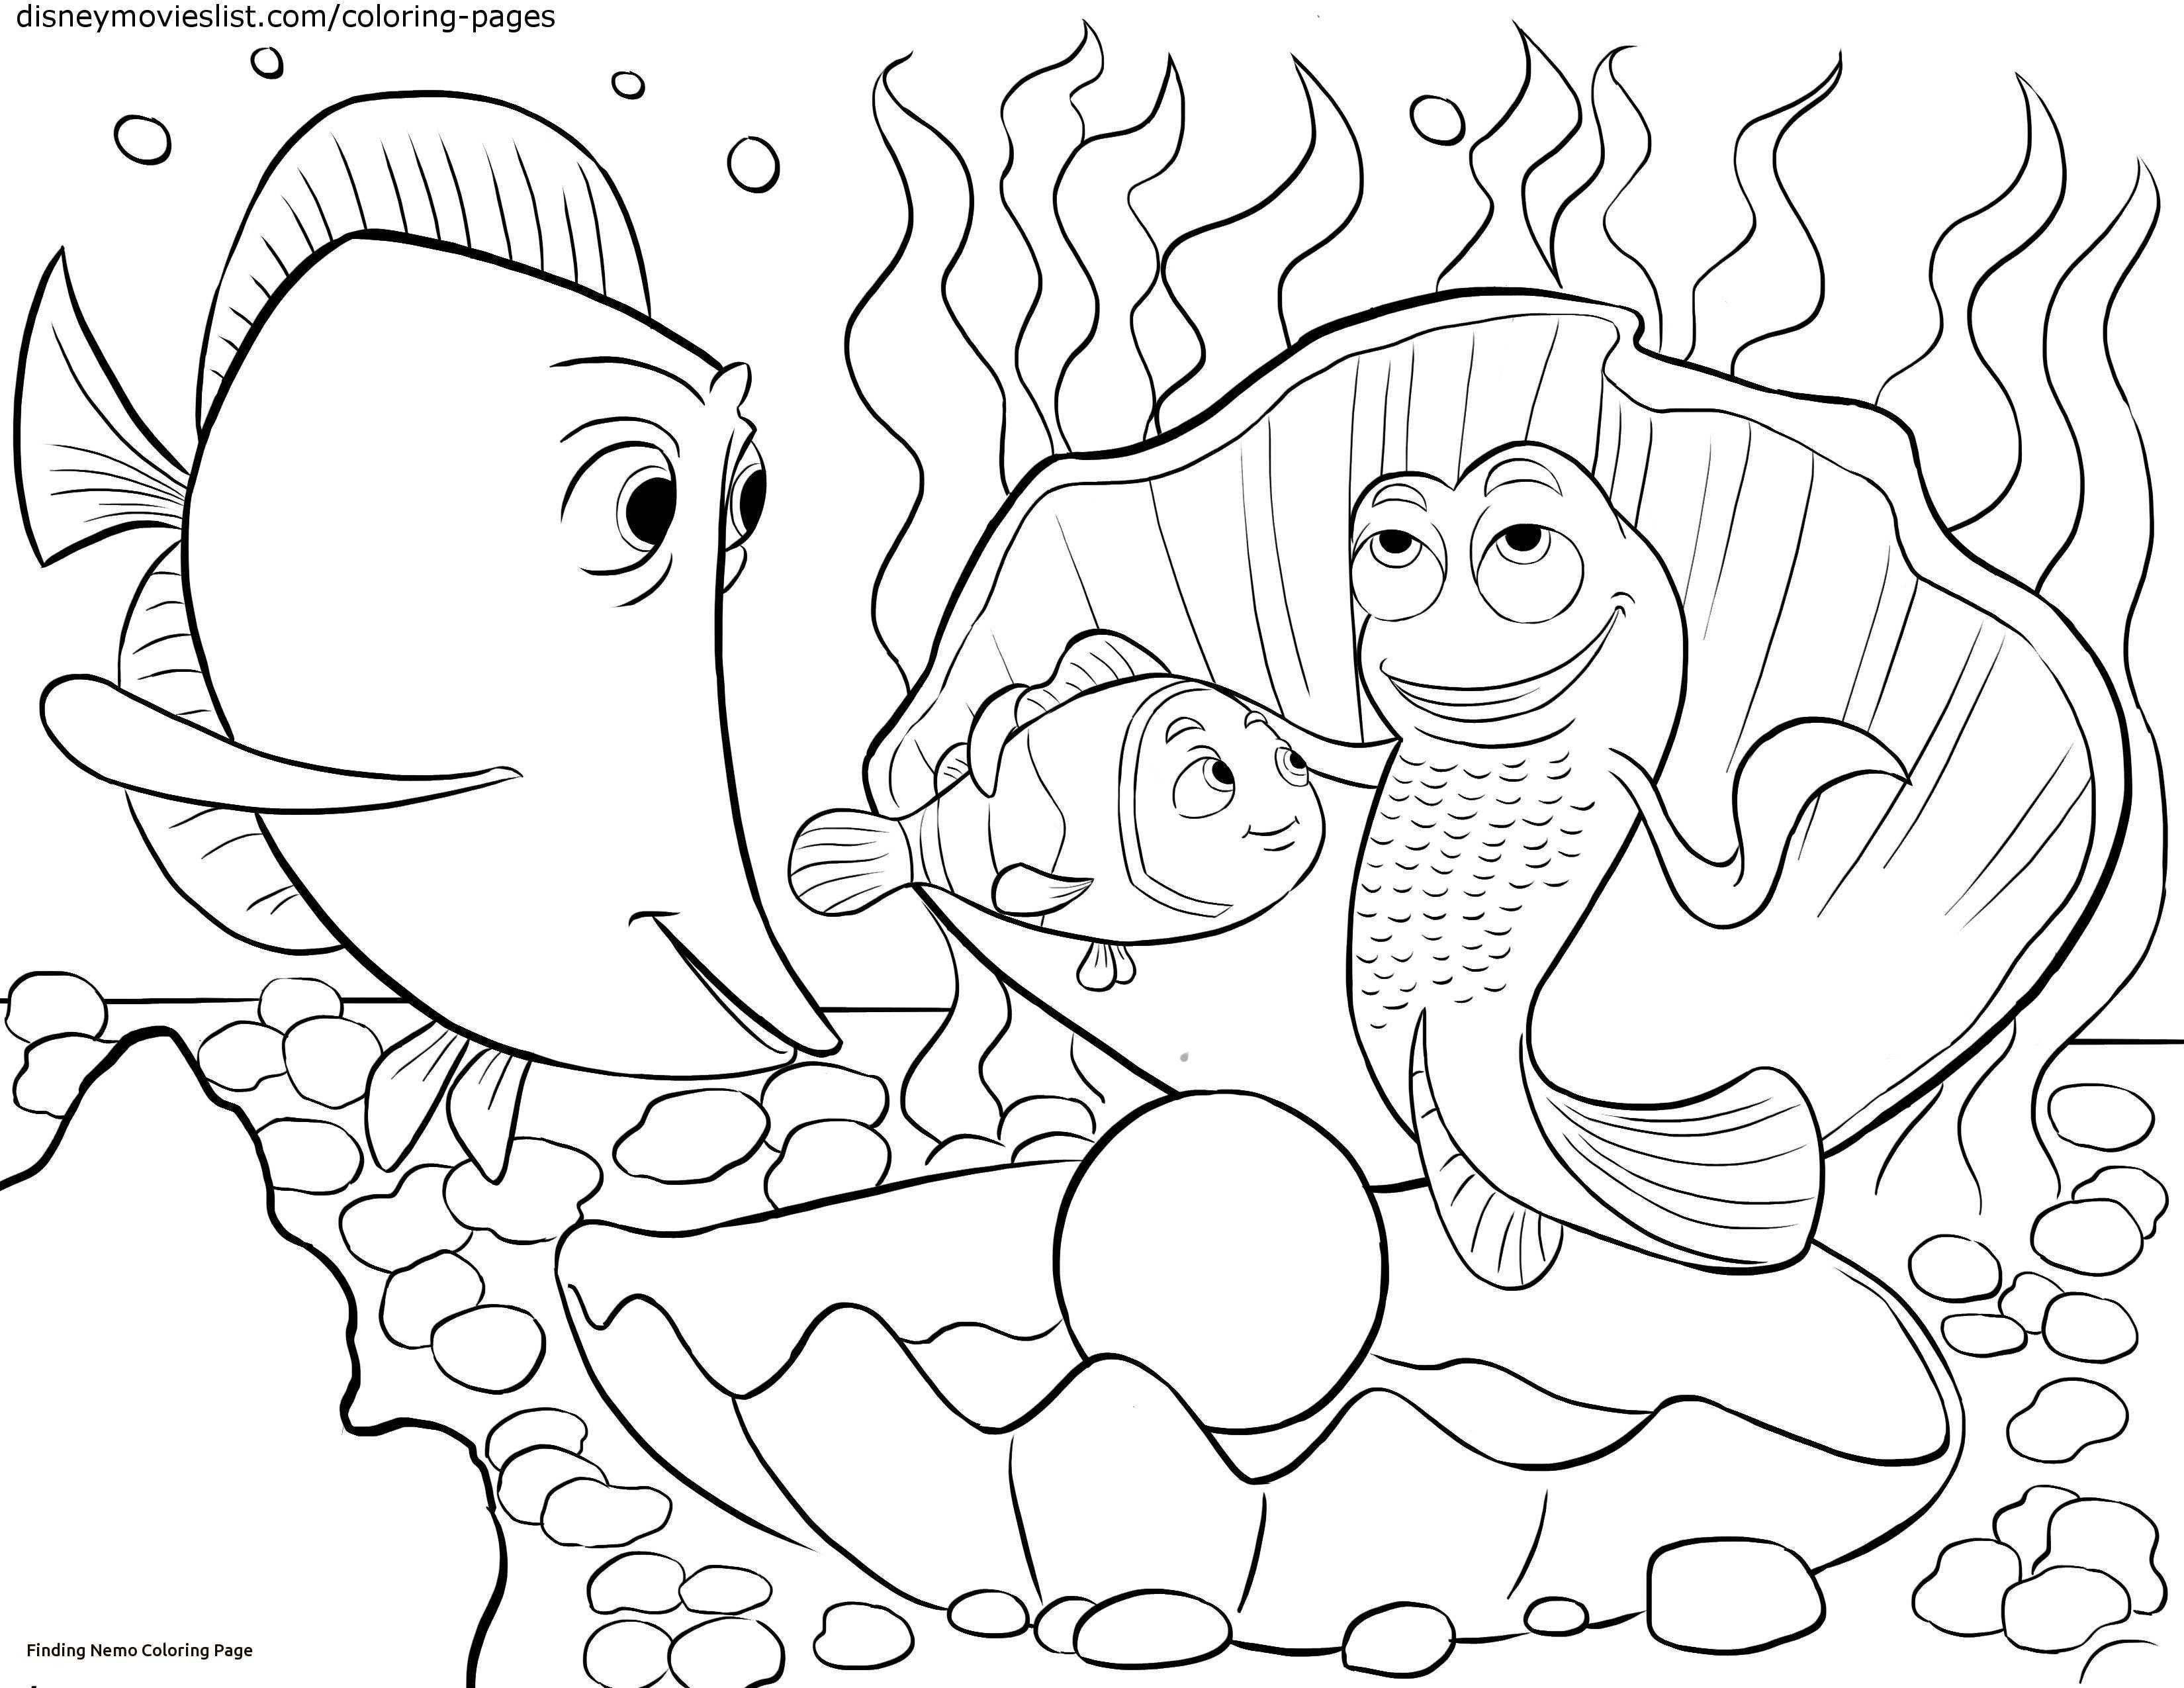 Finding Nemo Coloring Pages Unique Finding Dory Coloring Pages Nemo Coloring Pages Finding Nemo Coloring Pages Printable Coloring Book